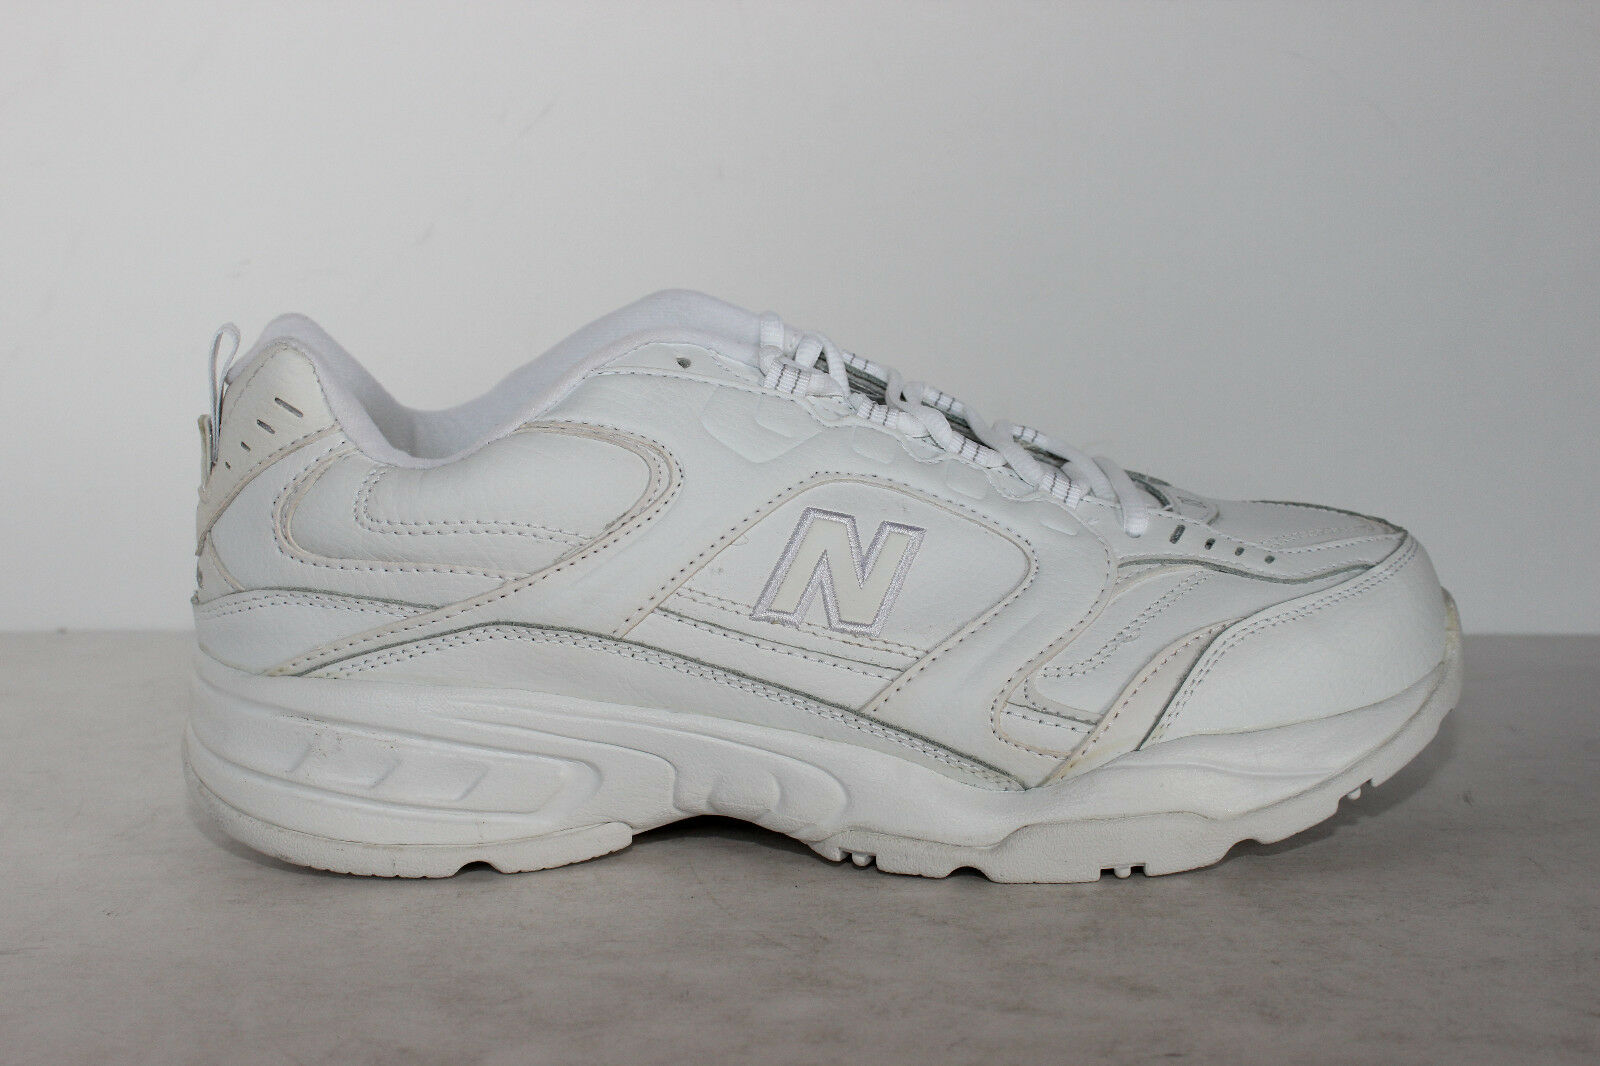 New Balance MX407N Mens Crosstrainer / Running Shoes  NWD 15 - White 7 - 15 NWD D - 4E 770733